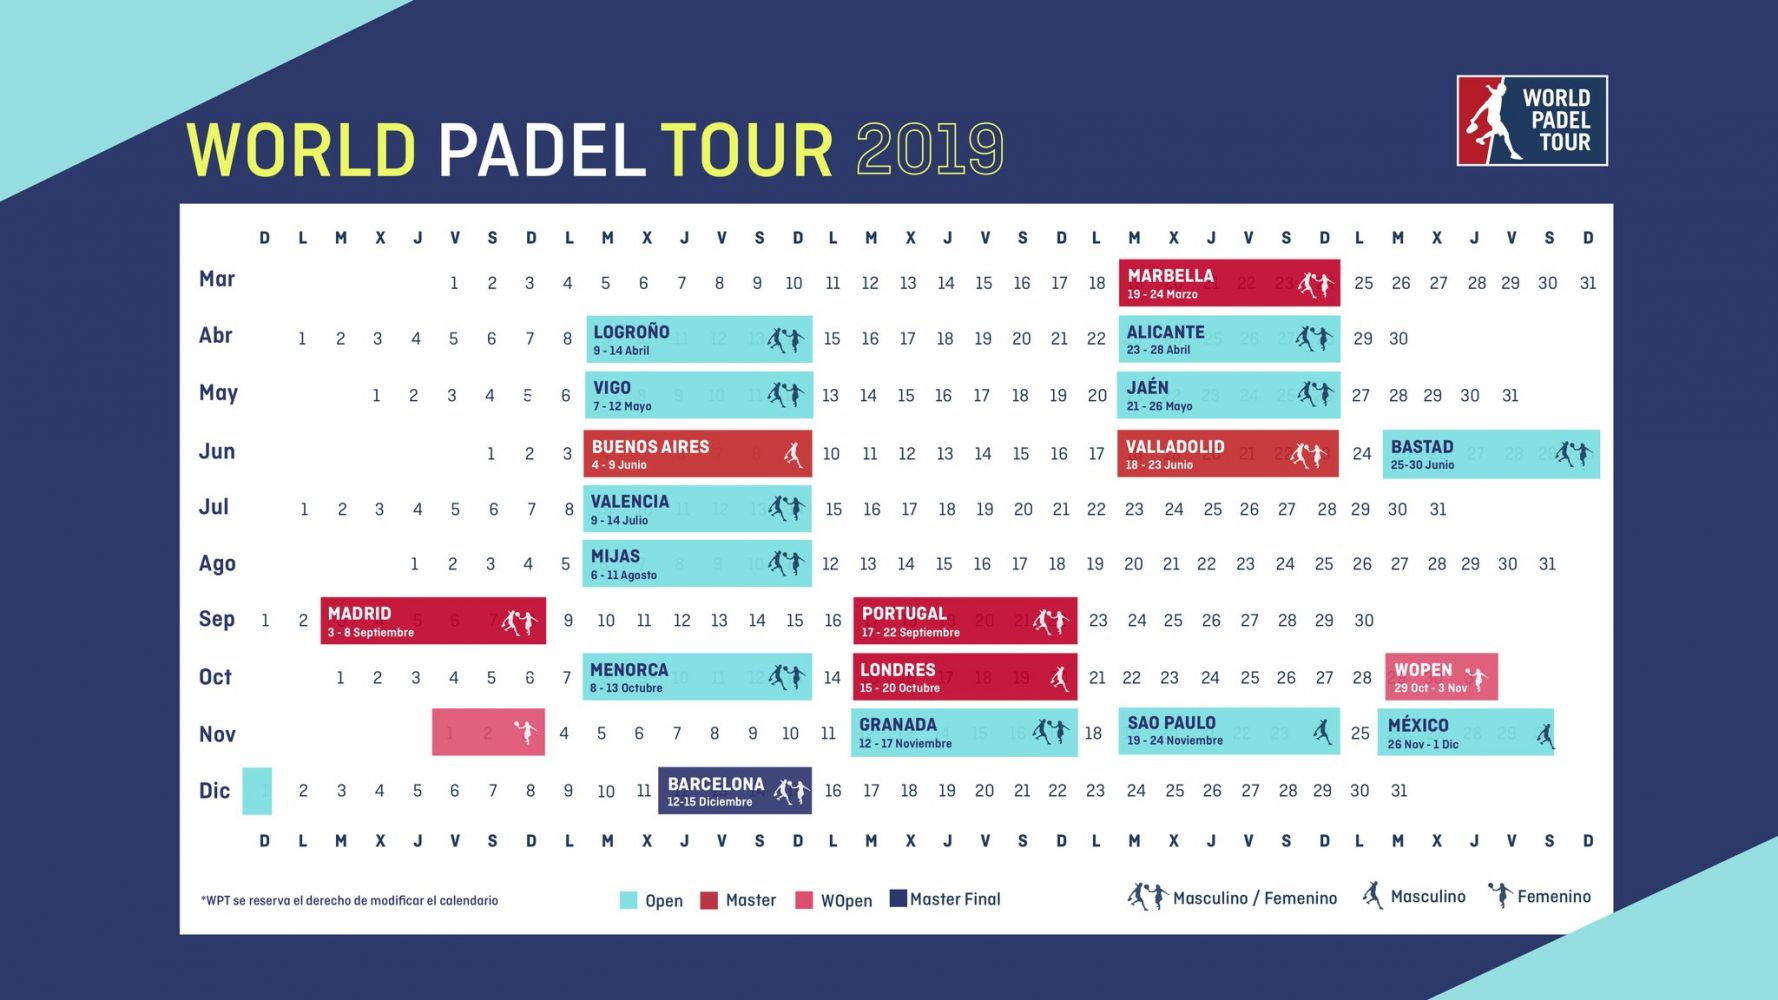 Calendario World Padel Tour 2019